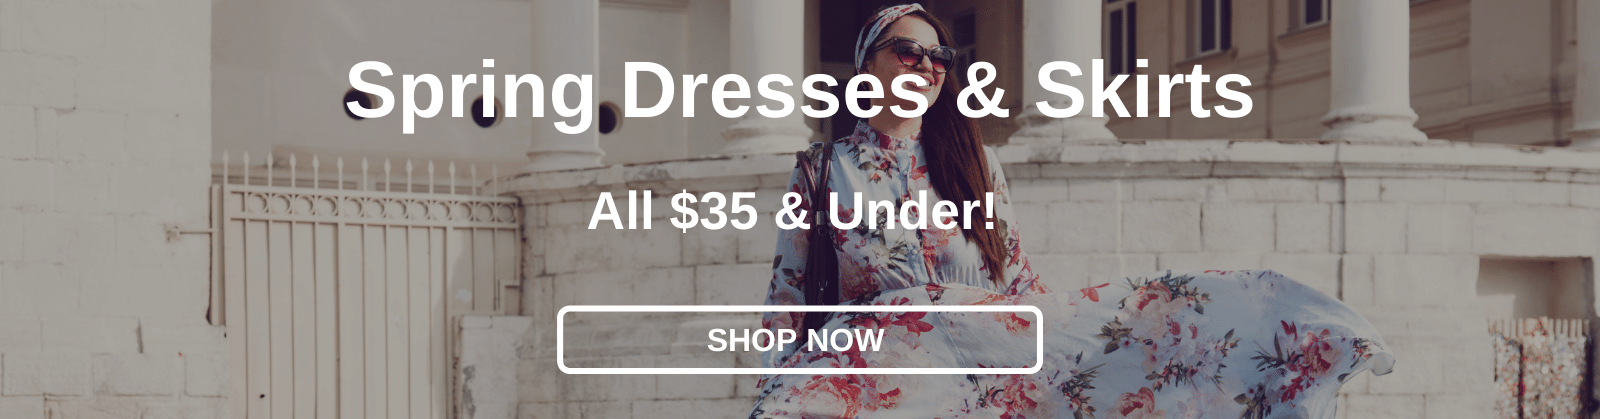 Spring Dresses & Skirts All $35 & Under! [Shop Now]